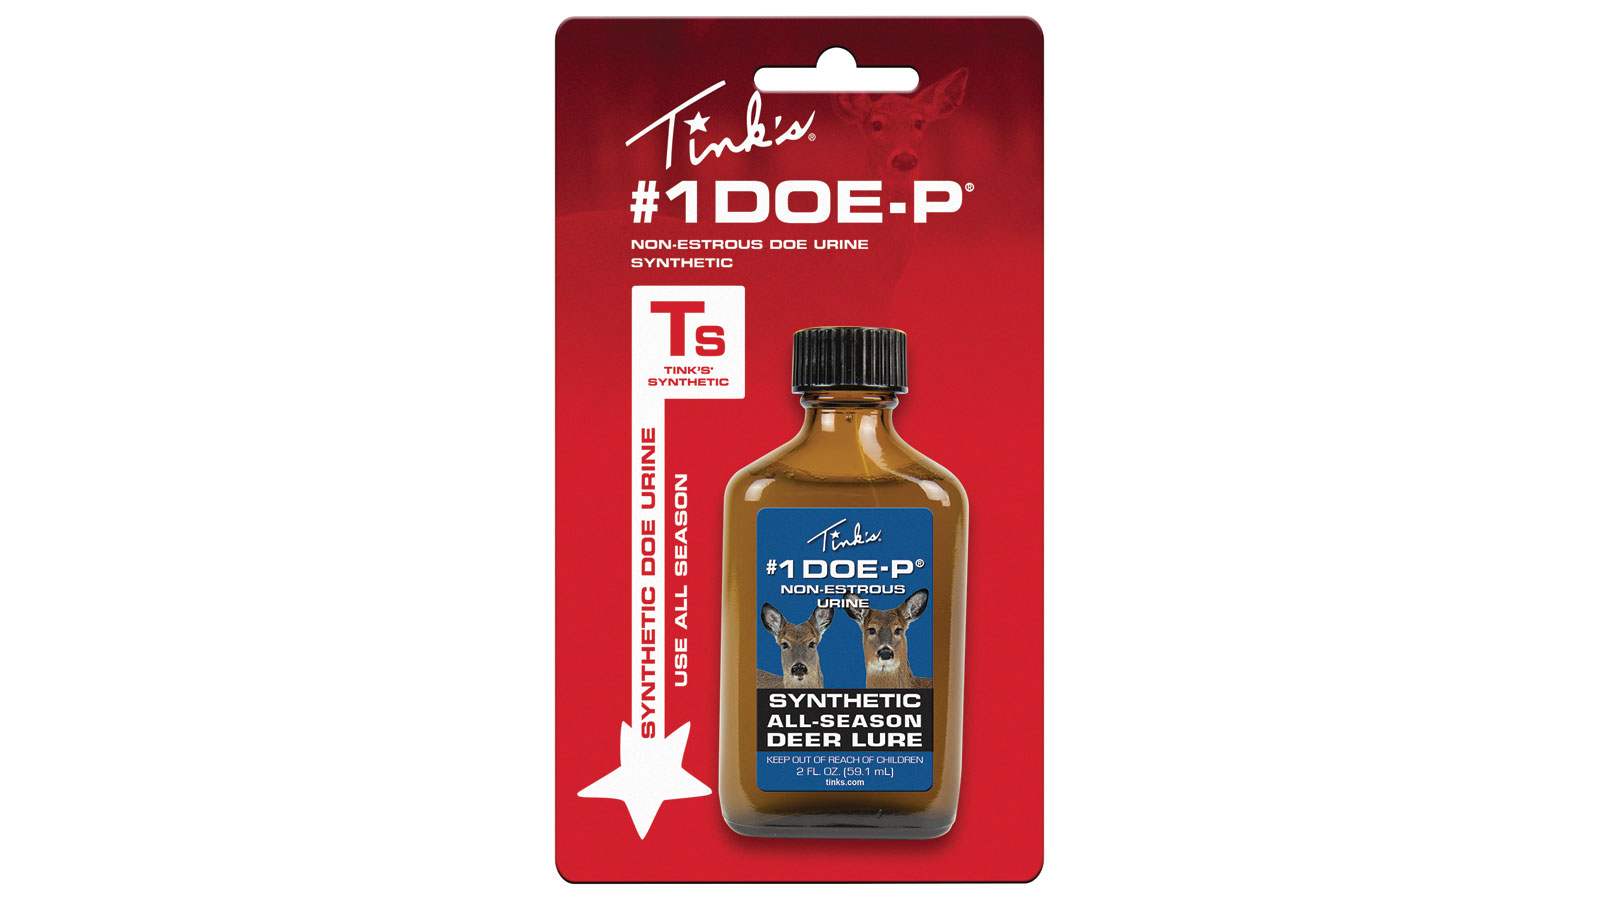 Tinks #1 DOE-P SYNTHETIC 2 OZ